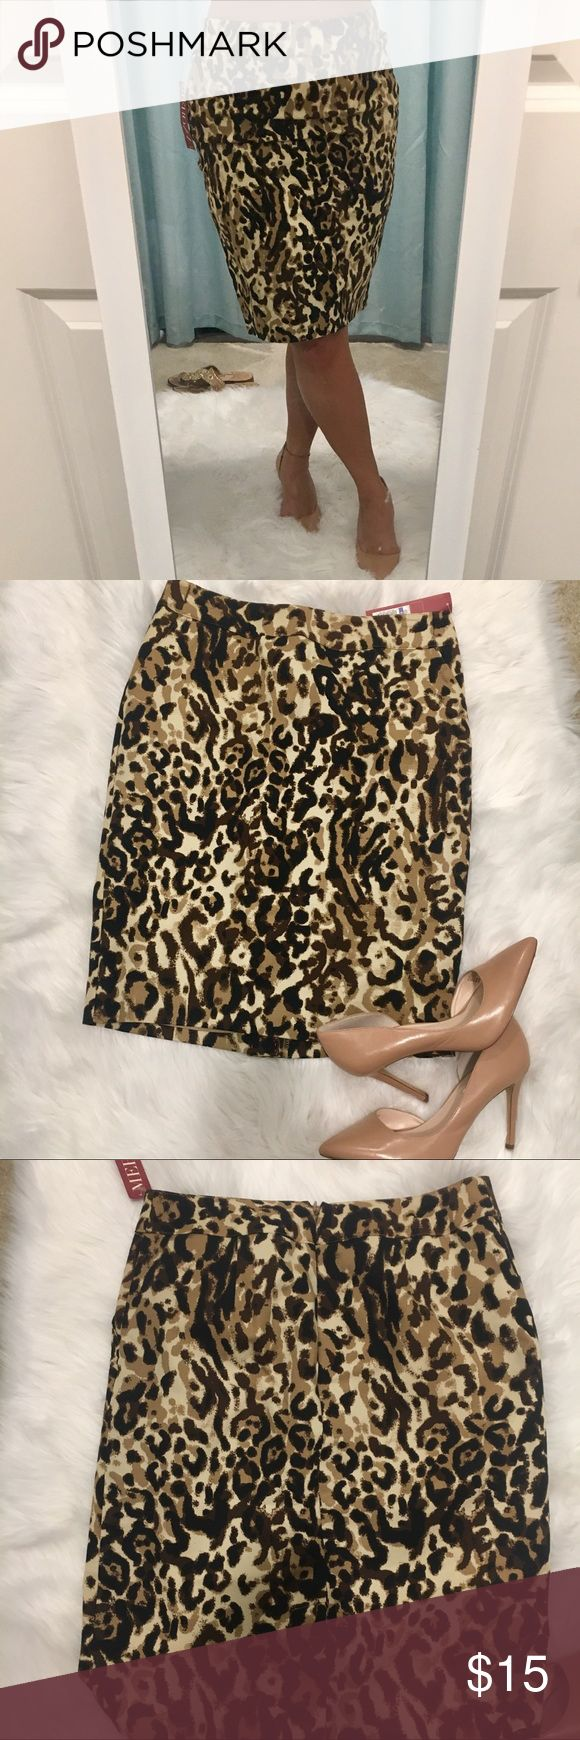 💥 Leopard pencil skirt Leopard pencil skirt, zipper back. NWT. Size 8 but it fits good for a 4! Tight for an 8 Merona Skirts Pencil